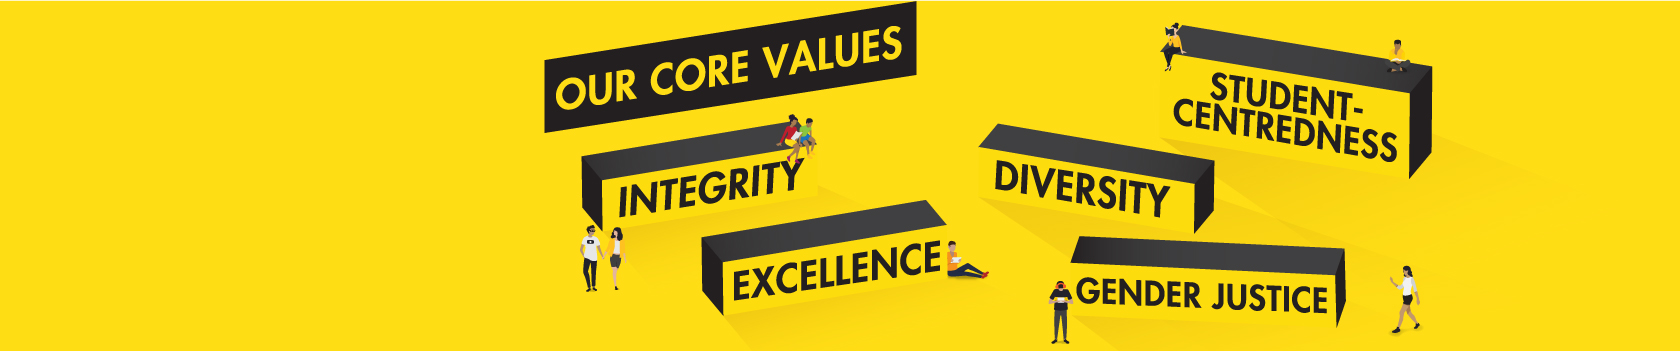 UWI Core Values